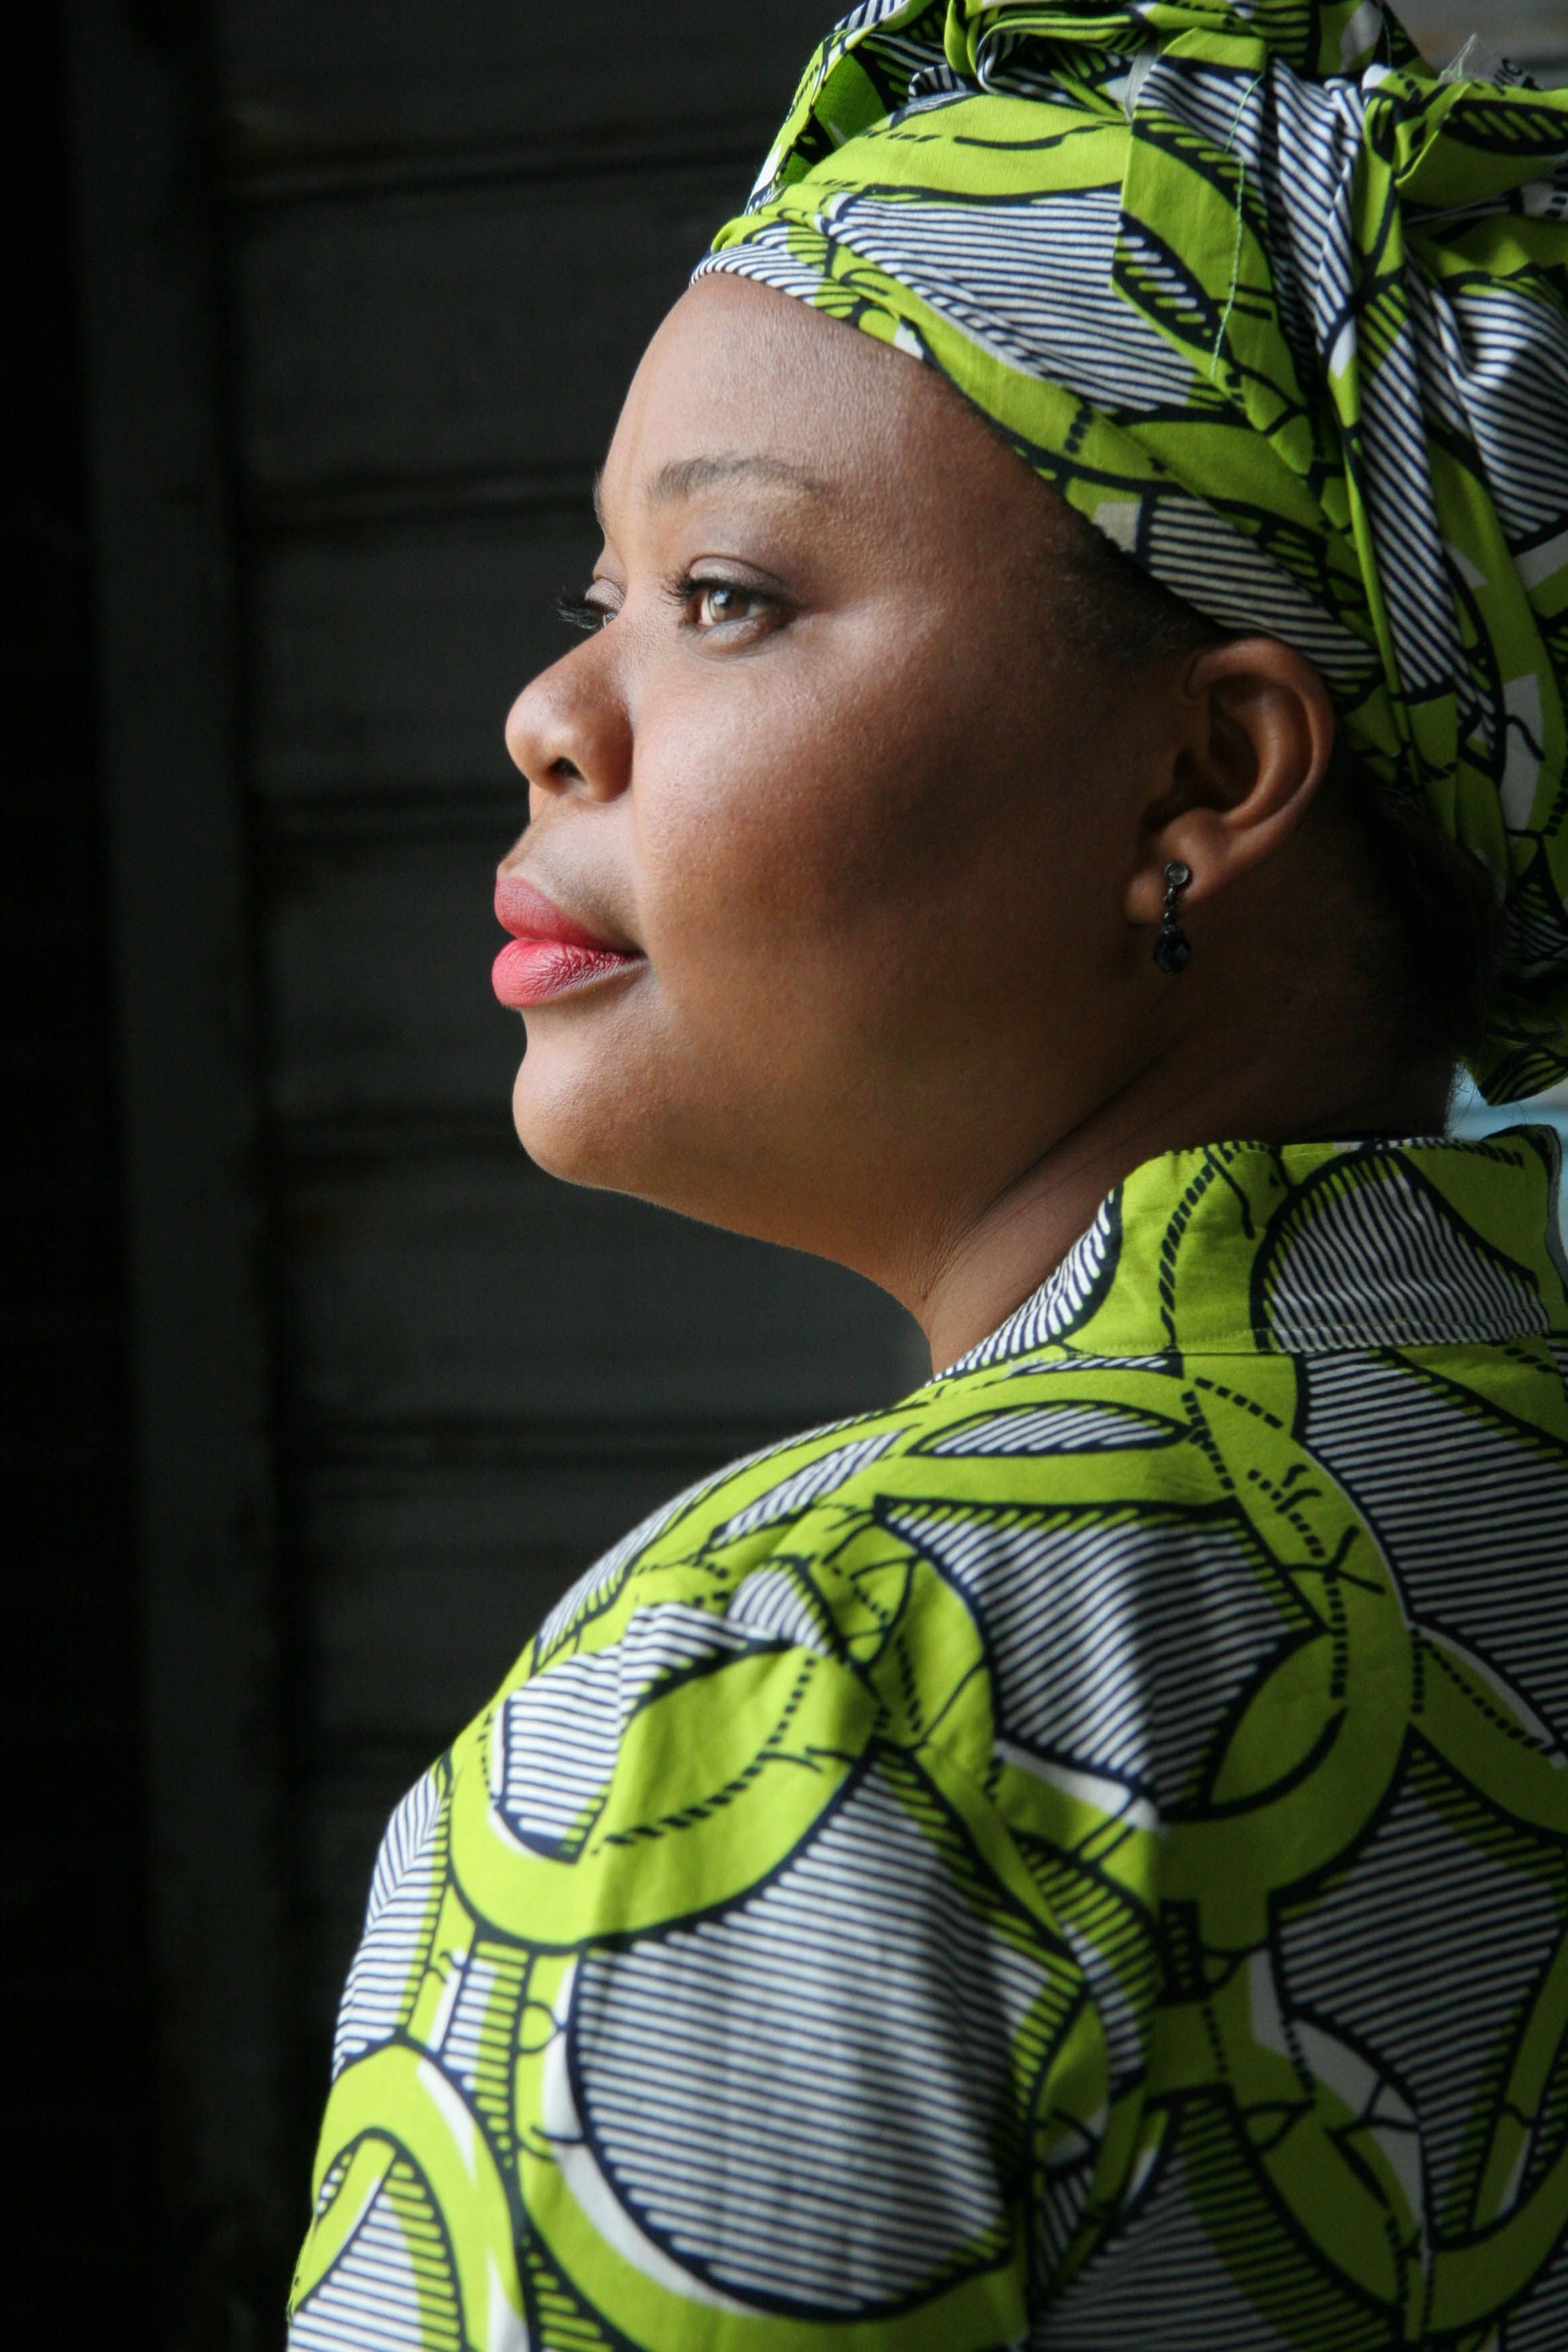 Leymah Gbowee.  A major women's rights leader in Liberia.  She is a ray of hope in a poverty stricken, war torn nation.  She is a leader who has her followers next to her heart.